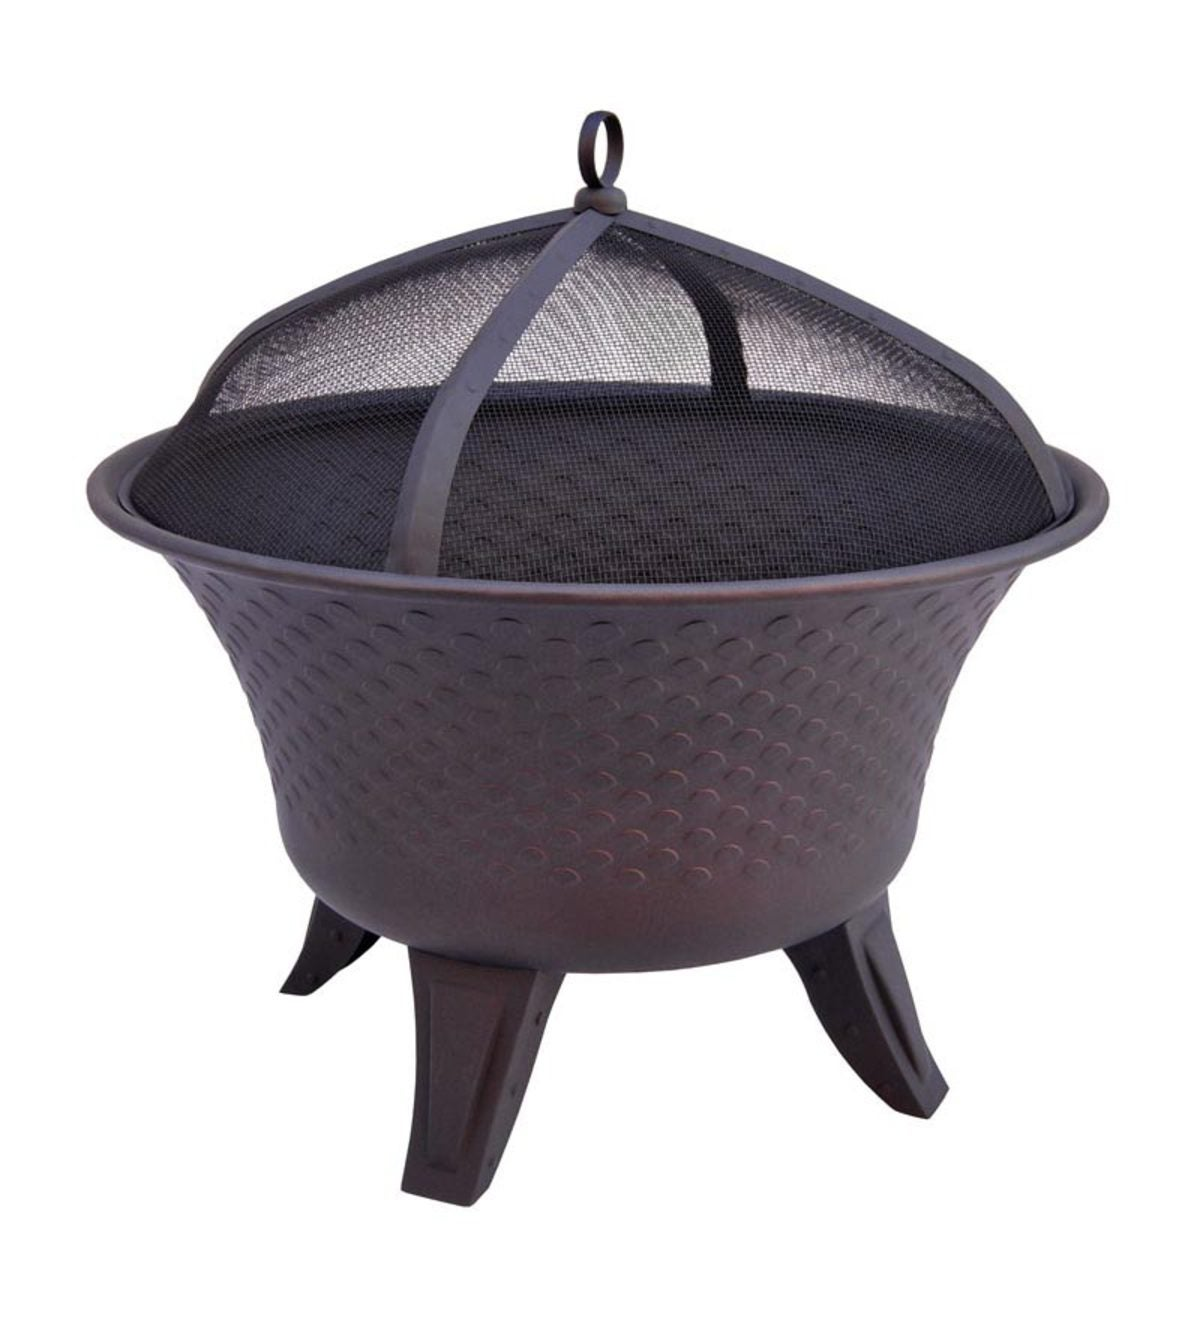 Rounded Bella Fire Pit With Flared Fire Bowl